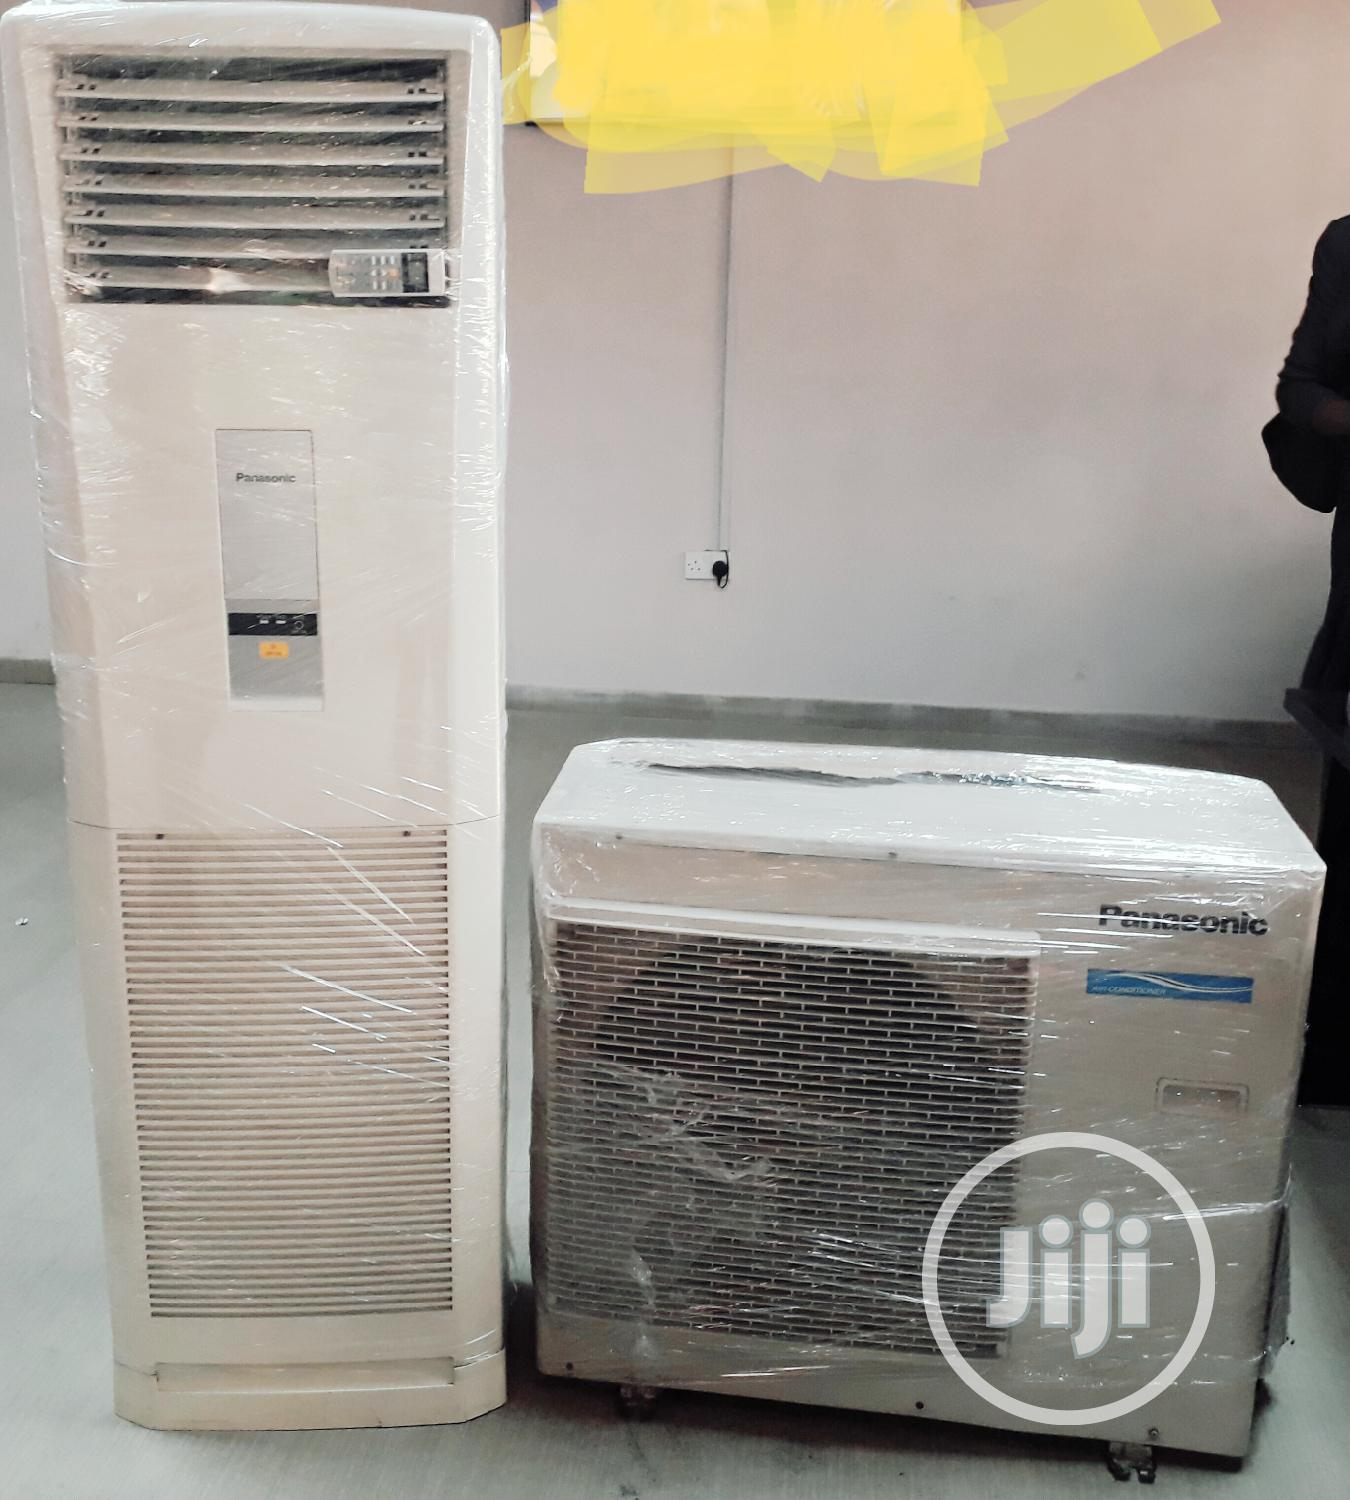 Panasonic 3hp Standing Air Conditioner With 1 Year Warranty | Home Appliances for sale in Yaba, Lagos State, Nigeria